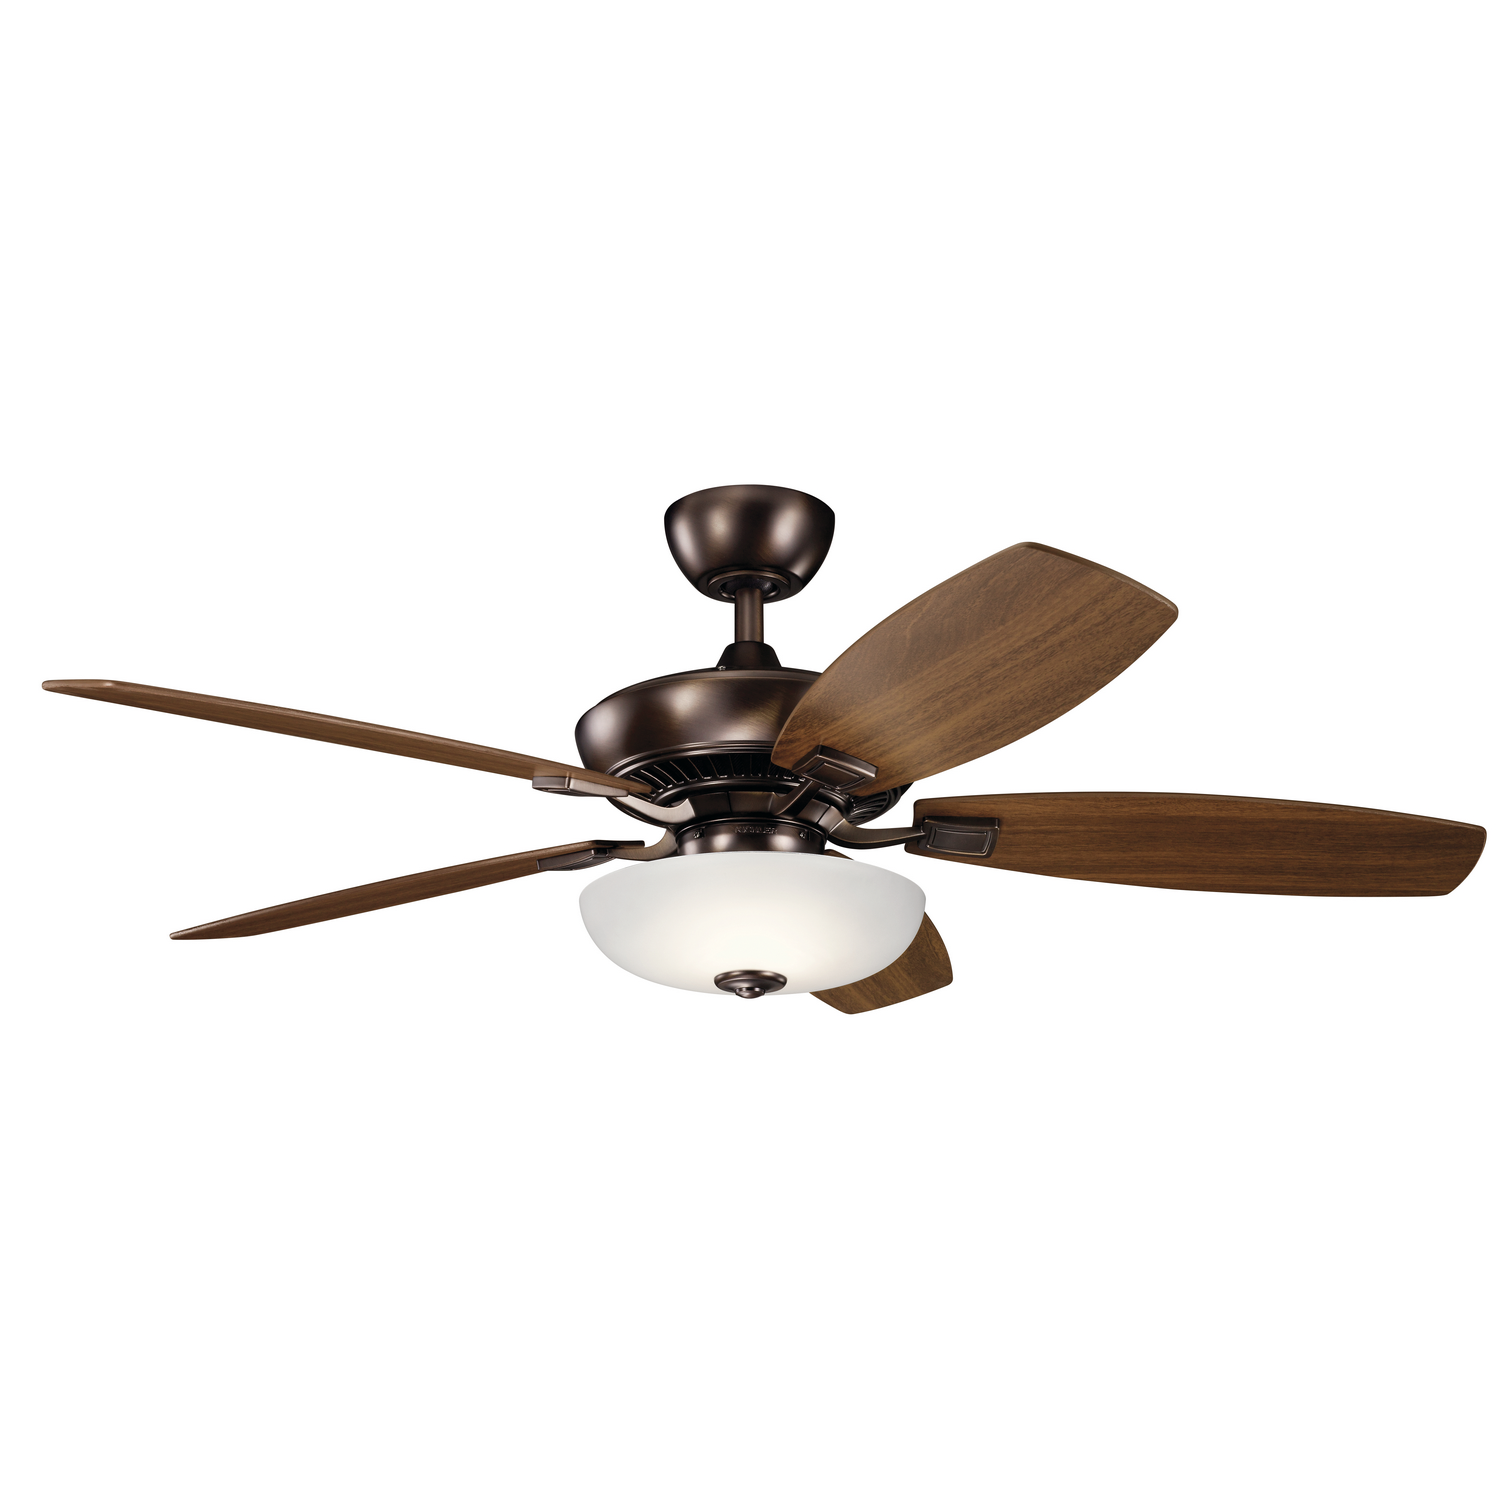 52 inchCeiling Fan from the Canfield Pro collection by Kichler 330013OBB